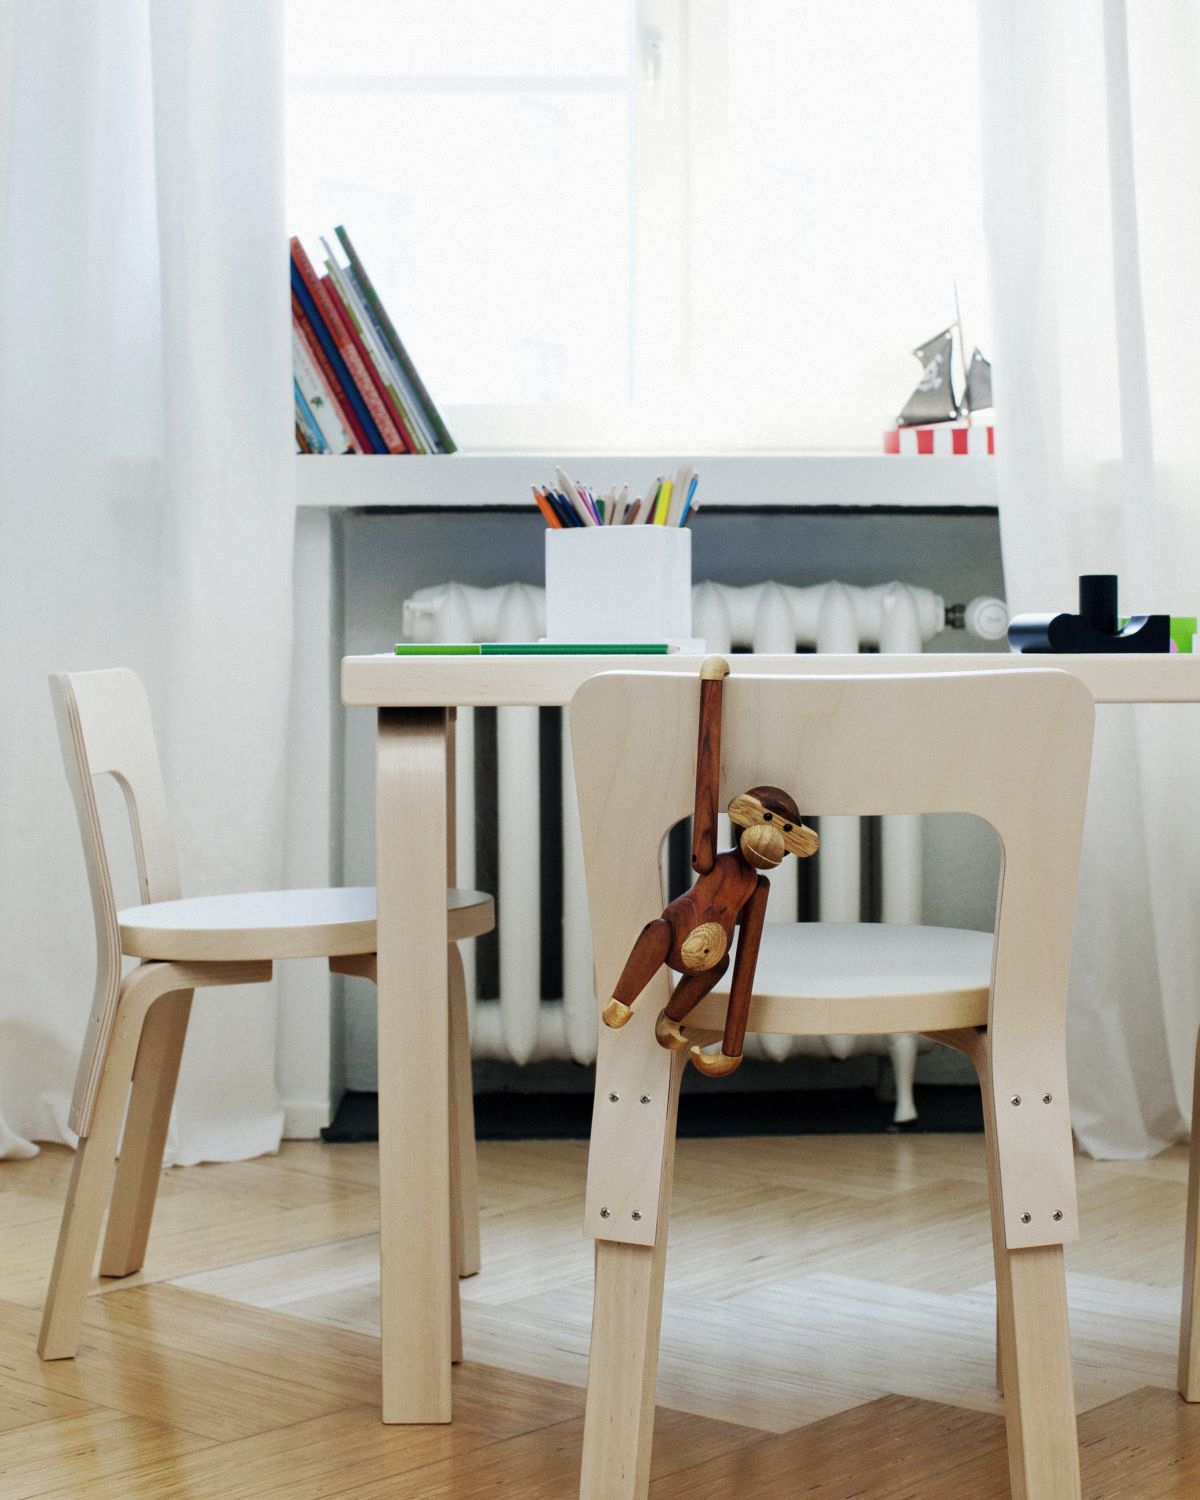 Childrens-Chair-N65-And-Aalto-Table-81B-In-Situ-Close-Up